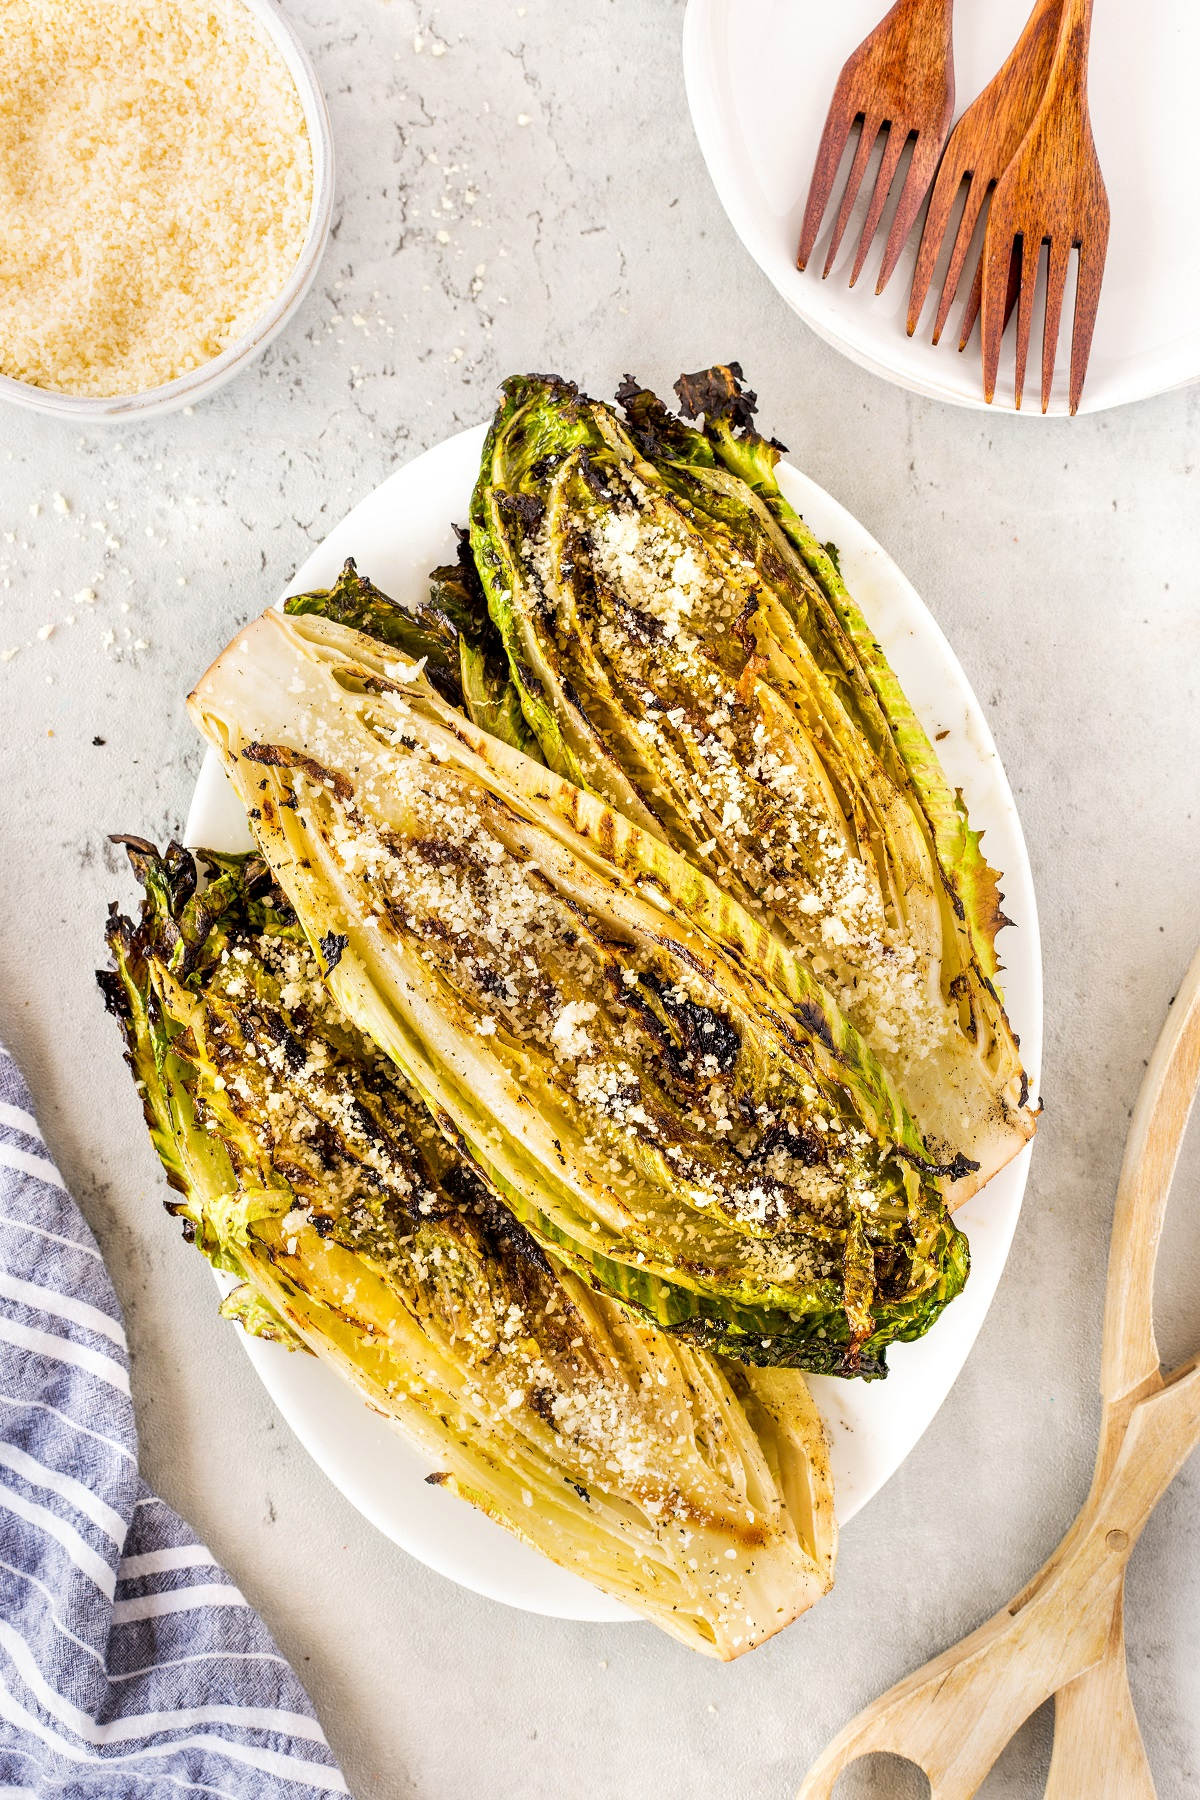 Grilled half heads of romaine lettuce with grated asiago cheese sprinkled on top on a white oval platter.